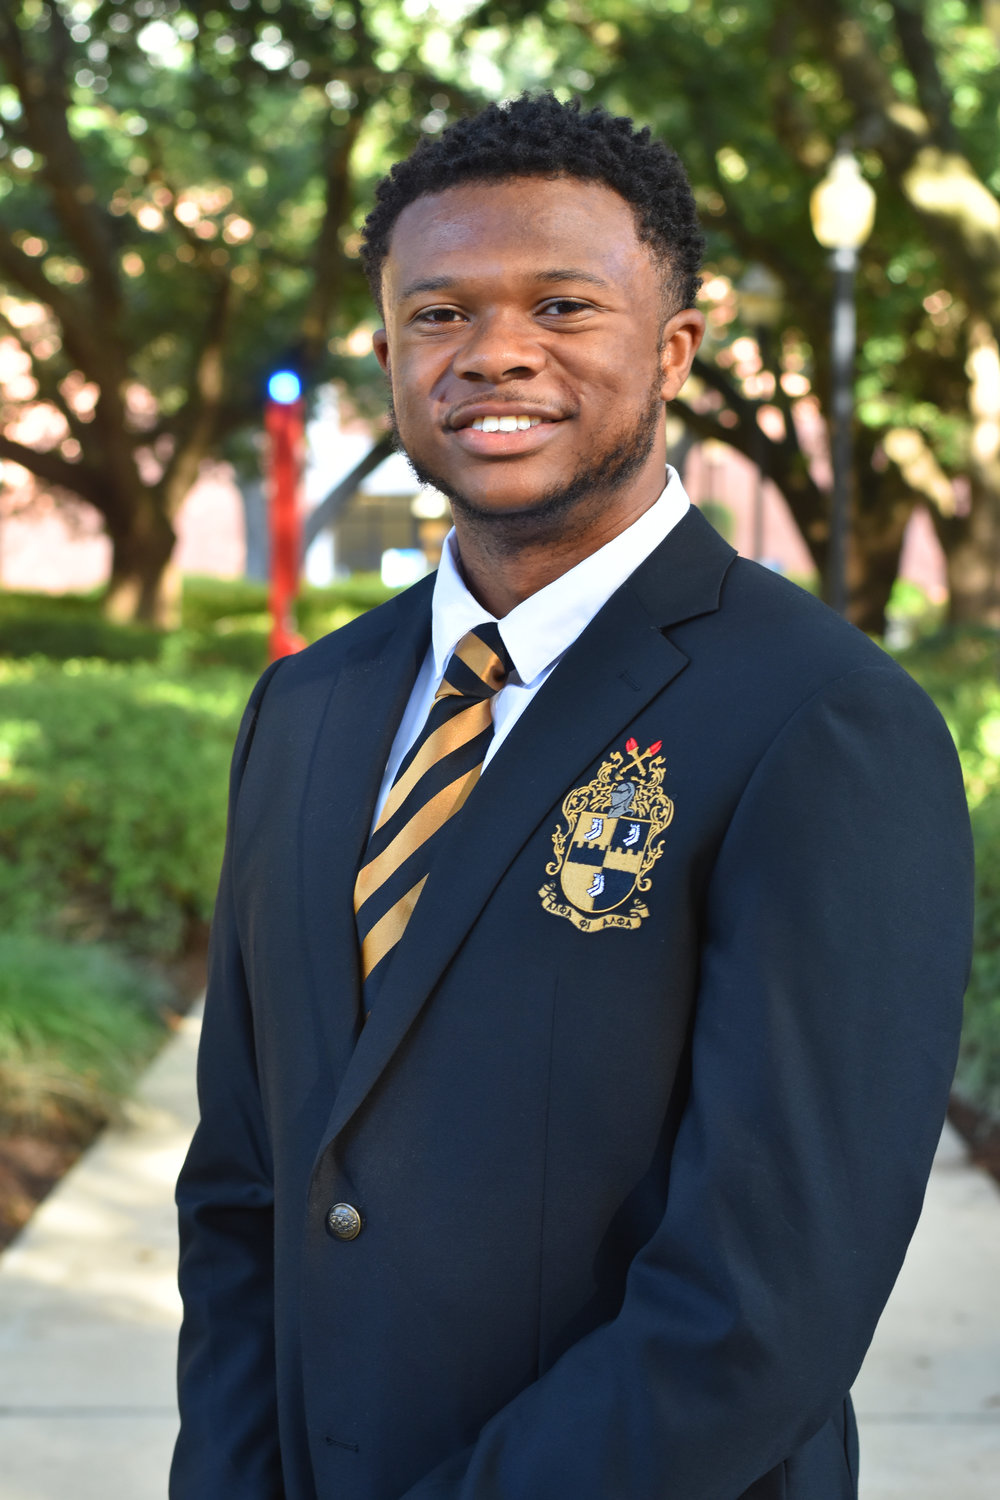 Meet Jeremy Anderson, a senior mass communications major from Little Rock, Arkansas by way of Baton Rouge, Louisiana. I am a student researcher in the political science research lab at Jackson State University, and a leadership alliance scholar. I currently serve as 1st Vice President of JSU's National Pan-Hellenic Council and Director of Educational activities for the Delta Phi Chapter of Alpha Phi Alpha Fraternity, Inc.